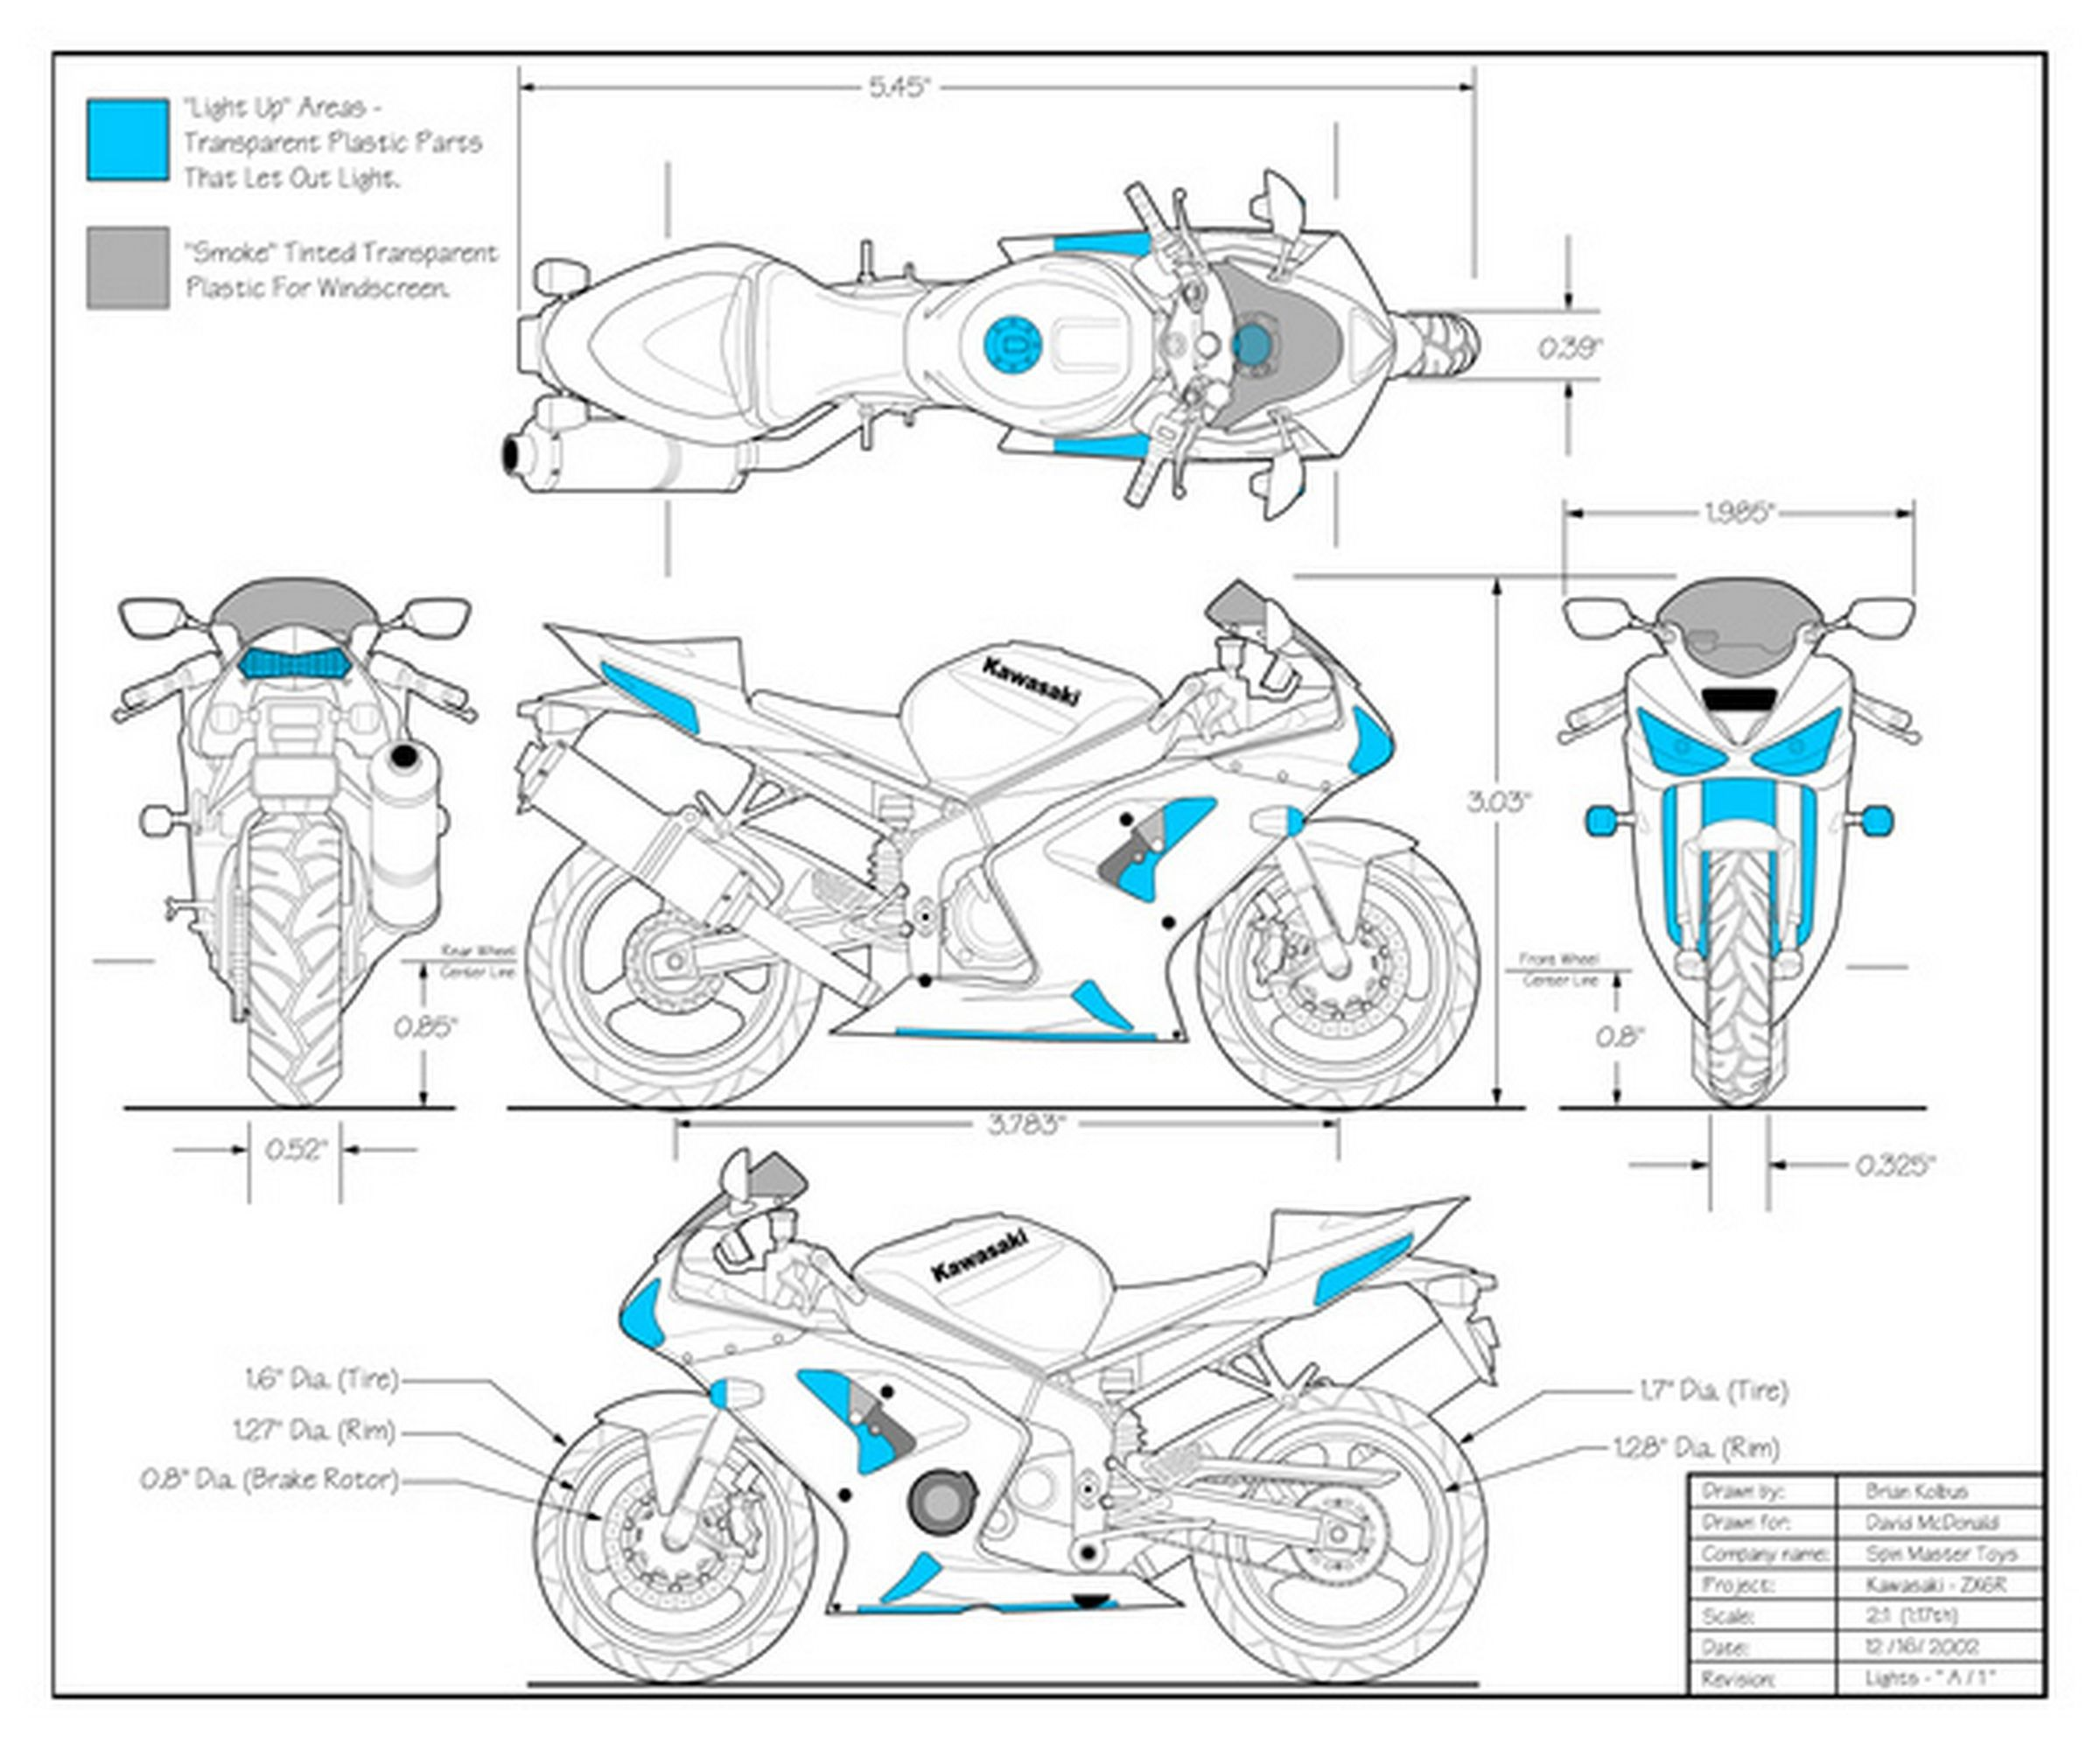 hight resolution of kawasaki zx6r 636 2004 blueprints